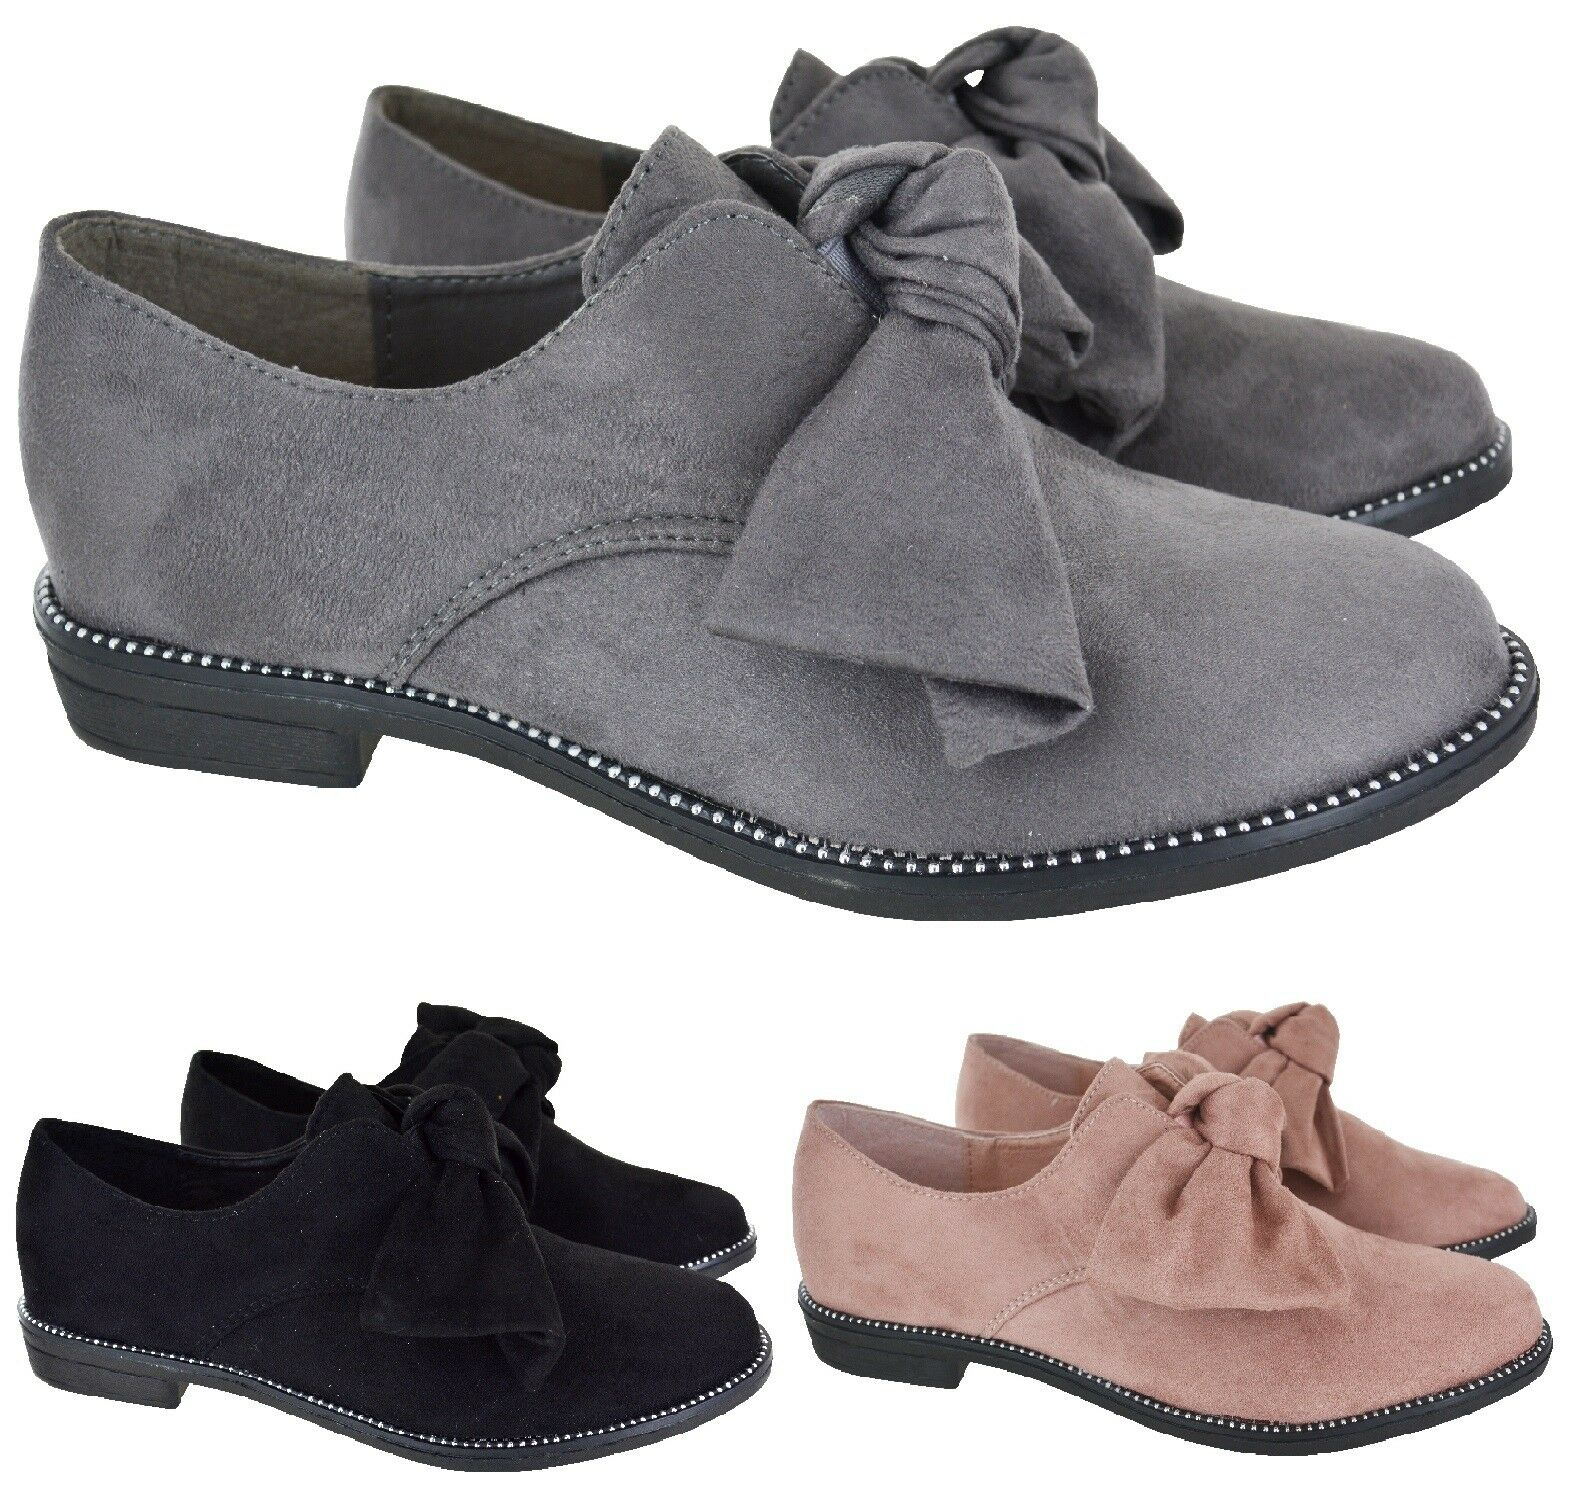 LADIES Mujer FLAT BOW STUD DOLLY LOAFER WORK OFFICE 3-8 SCHOOL PUMPS zapatos Talla 3-8 OFFICE cd7013